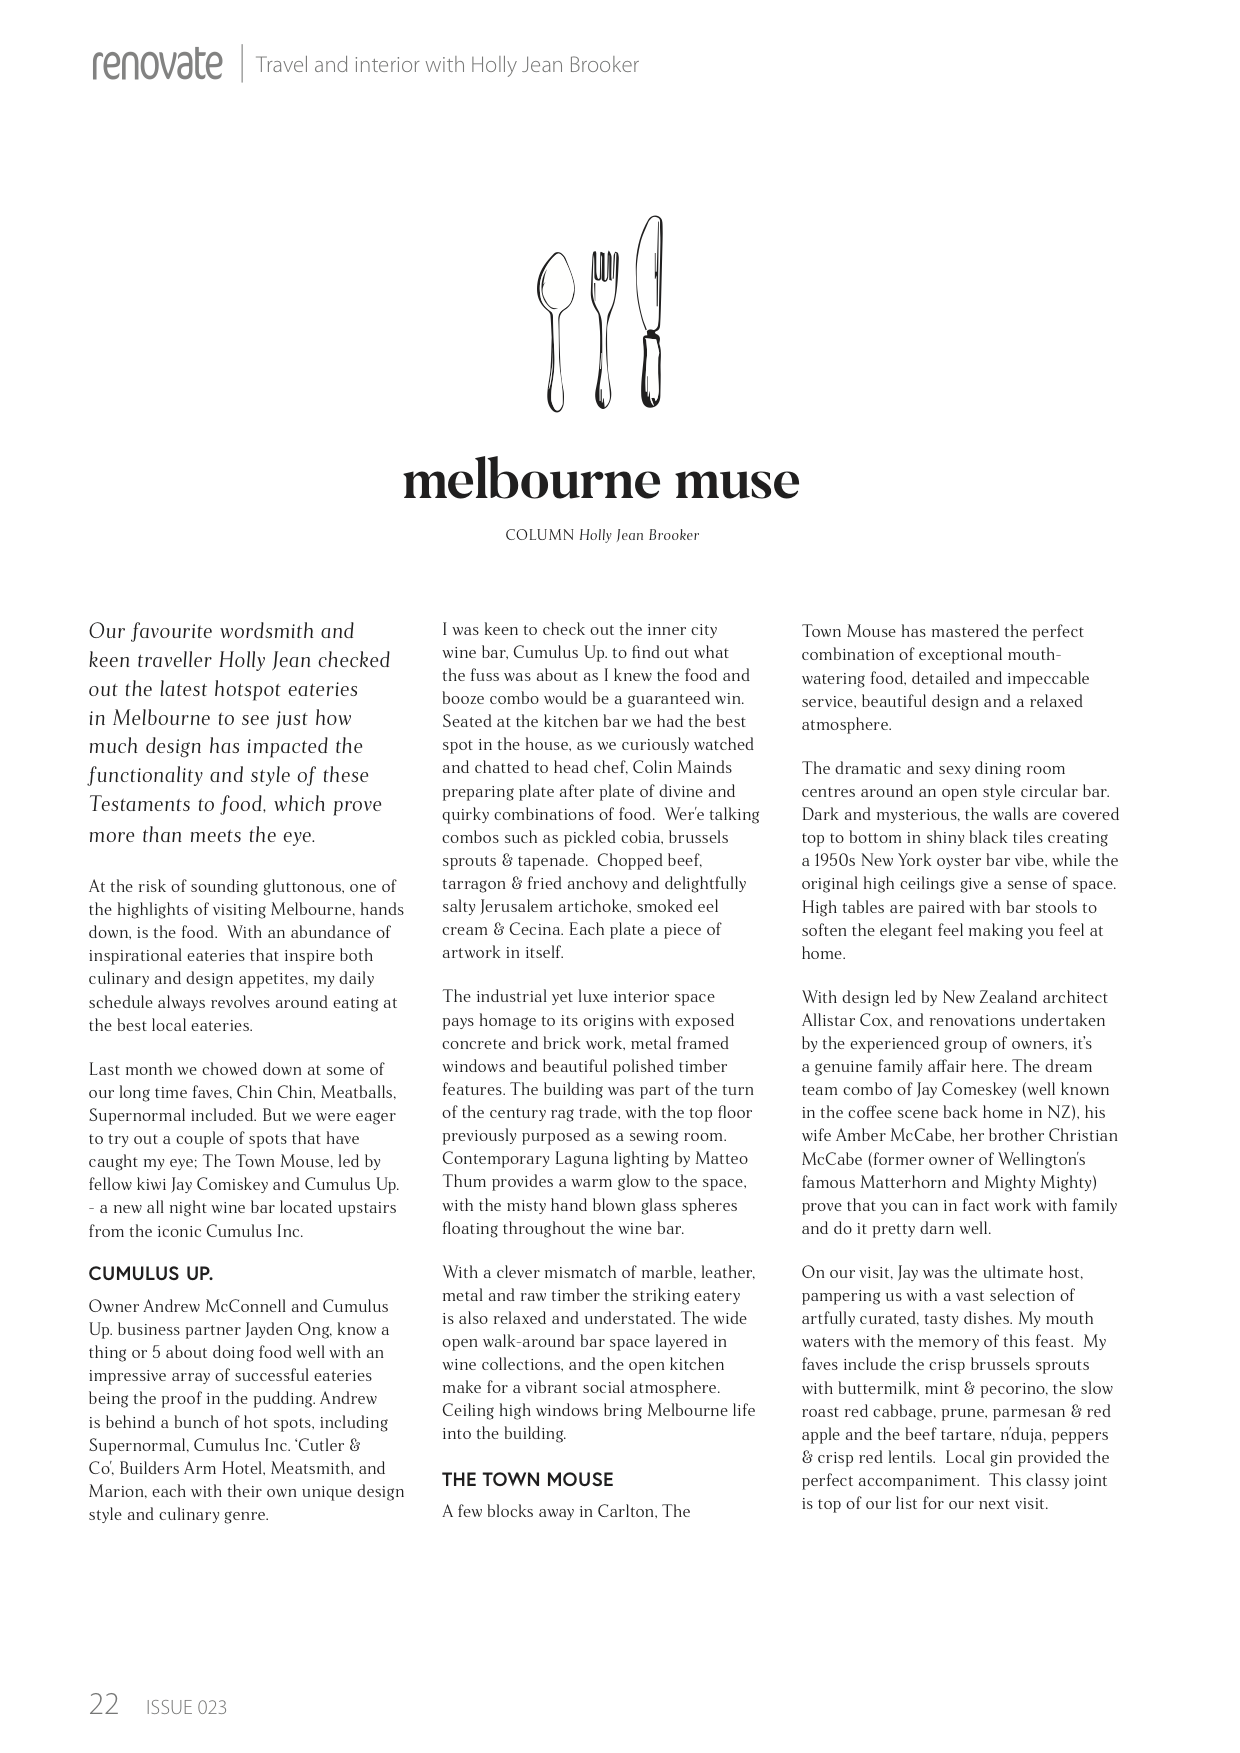 Renovate Magazine 2017 - Holly's Design & Travel Column covers epic eateries in Melbourne city.